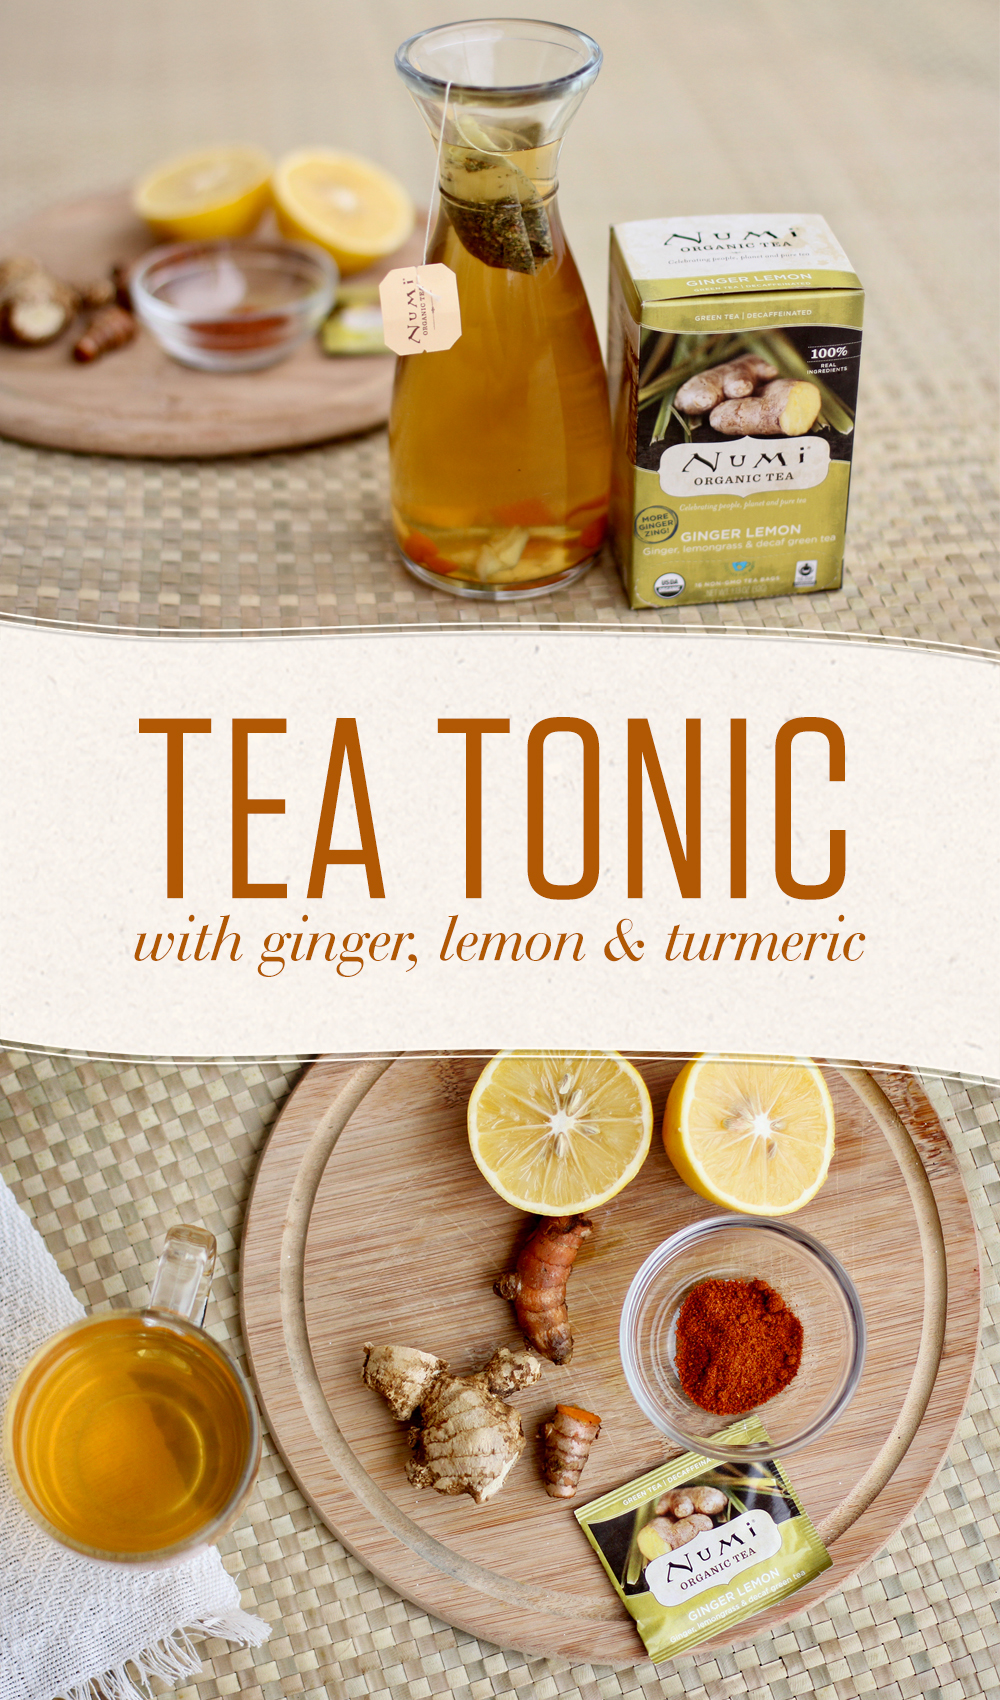 Give yourself a detoxifying boost with a tea tonic that infuses Ginger Lemon Tea with anti-inflammatory goodness and a cayenne kick.